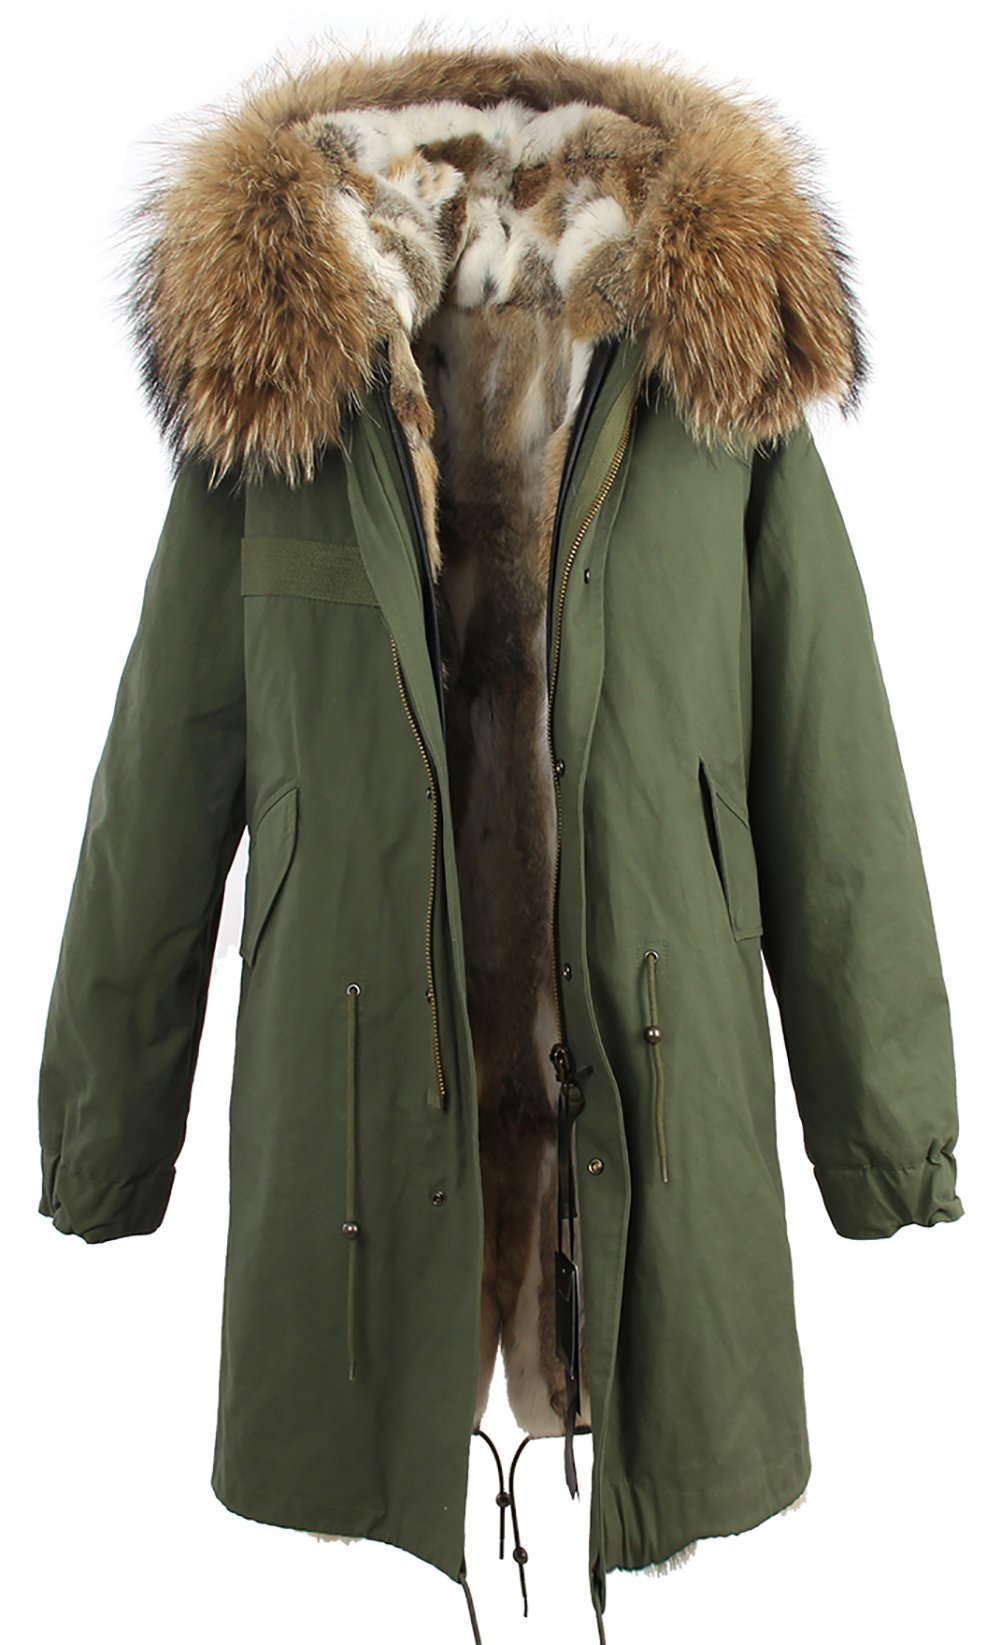 S.ROMZA Women Real Rabbit Fur Parka Upscale Long Hooded Coat Detachable Jacket Real Fur Liner (X-Large, Army Green & White Fur) by S.ROMZA